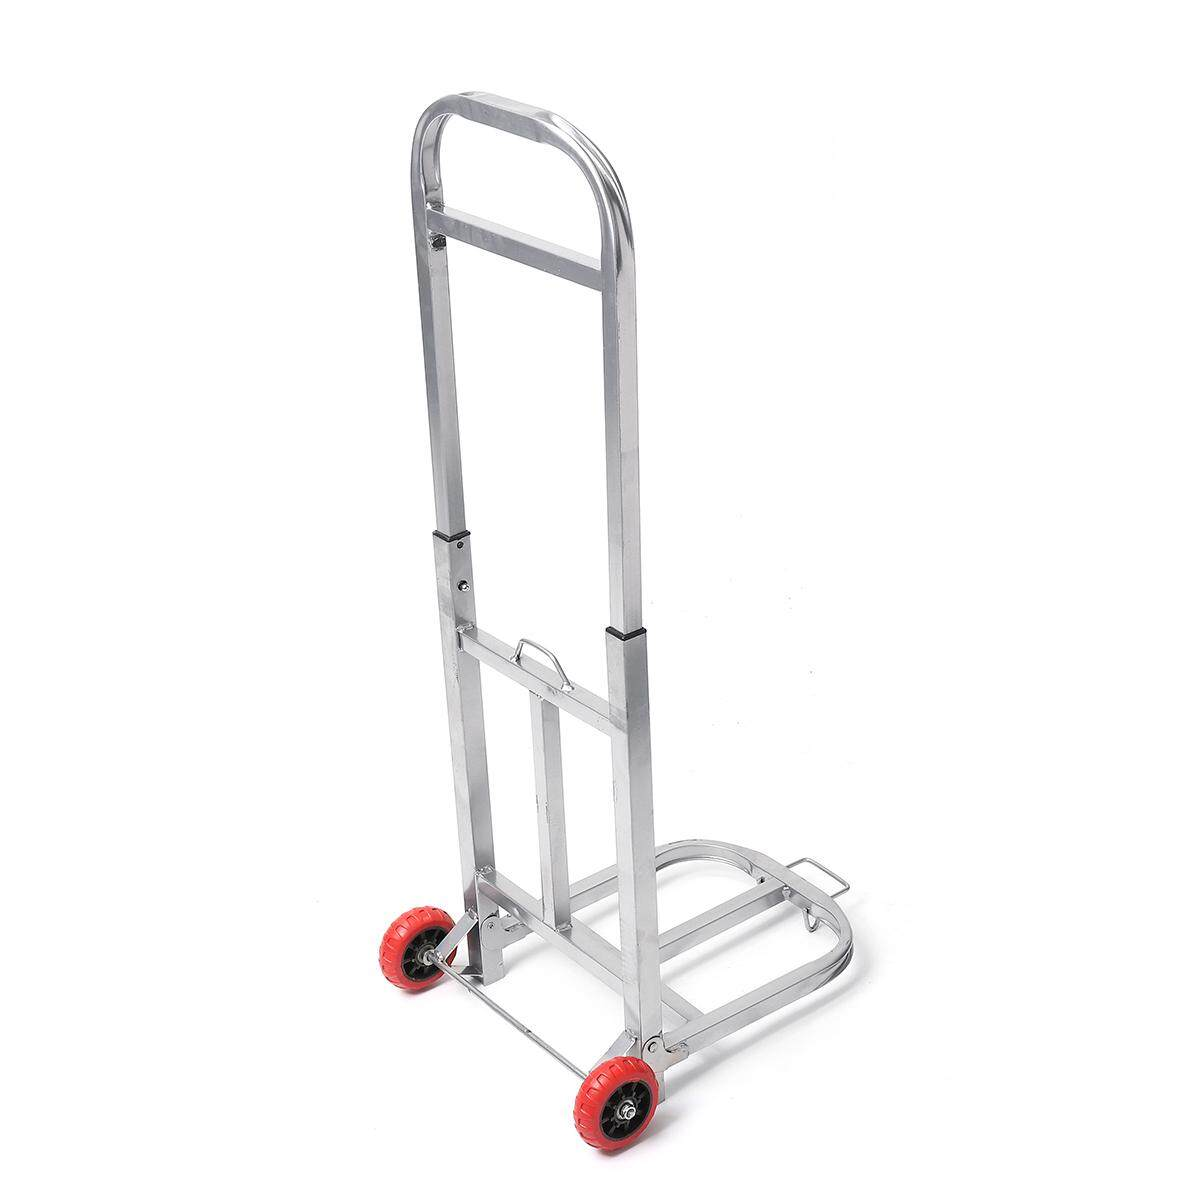 20kg Heavy Duty Lightweight Folding Foldable Hand Cart Trolley Barrow Sack Truck By Moonbeam.